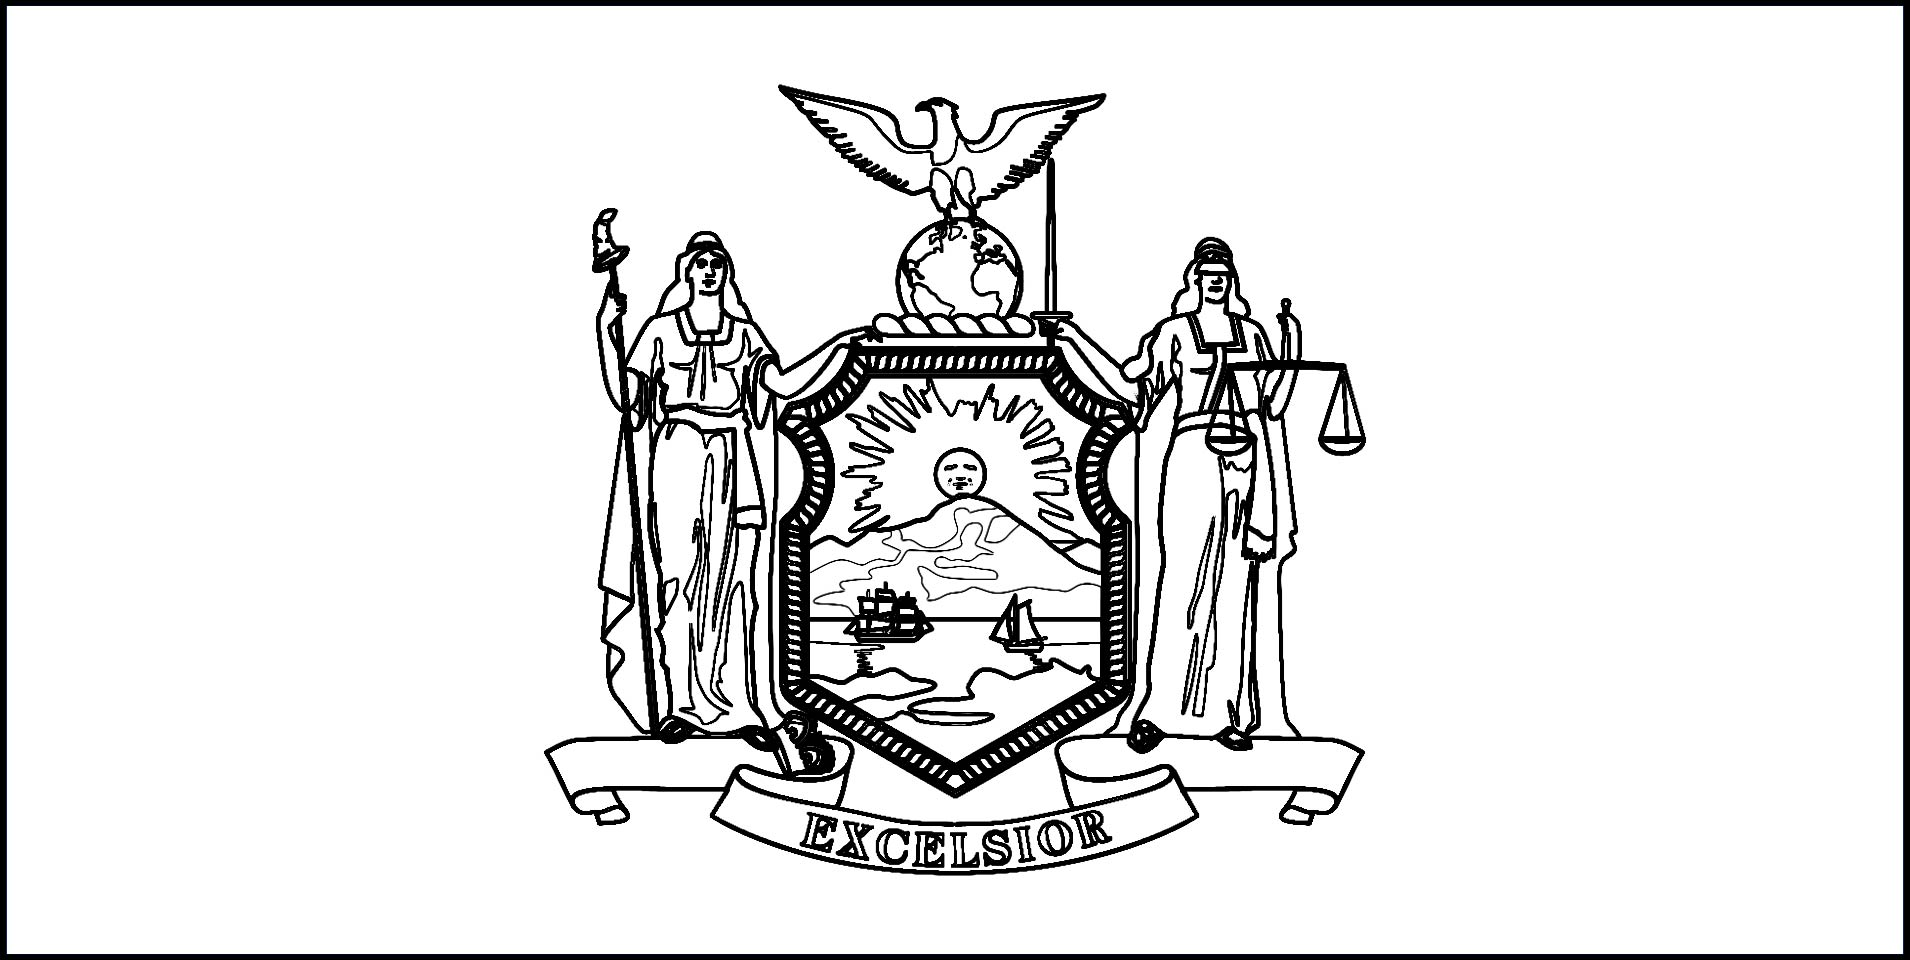 New York State Seal Vector at GetDrawings.com.